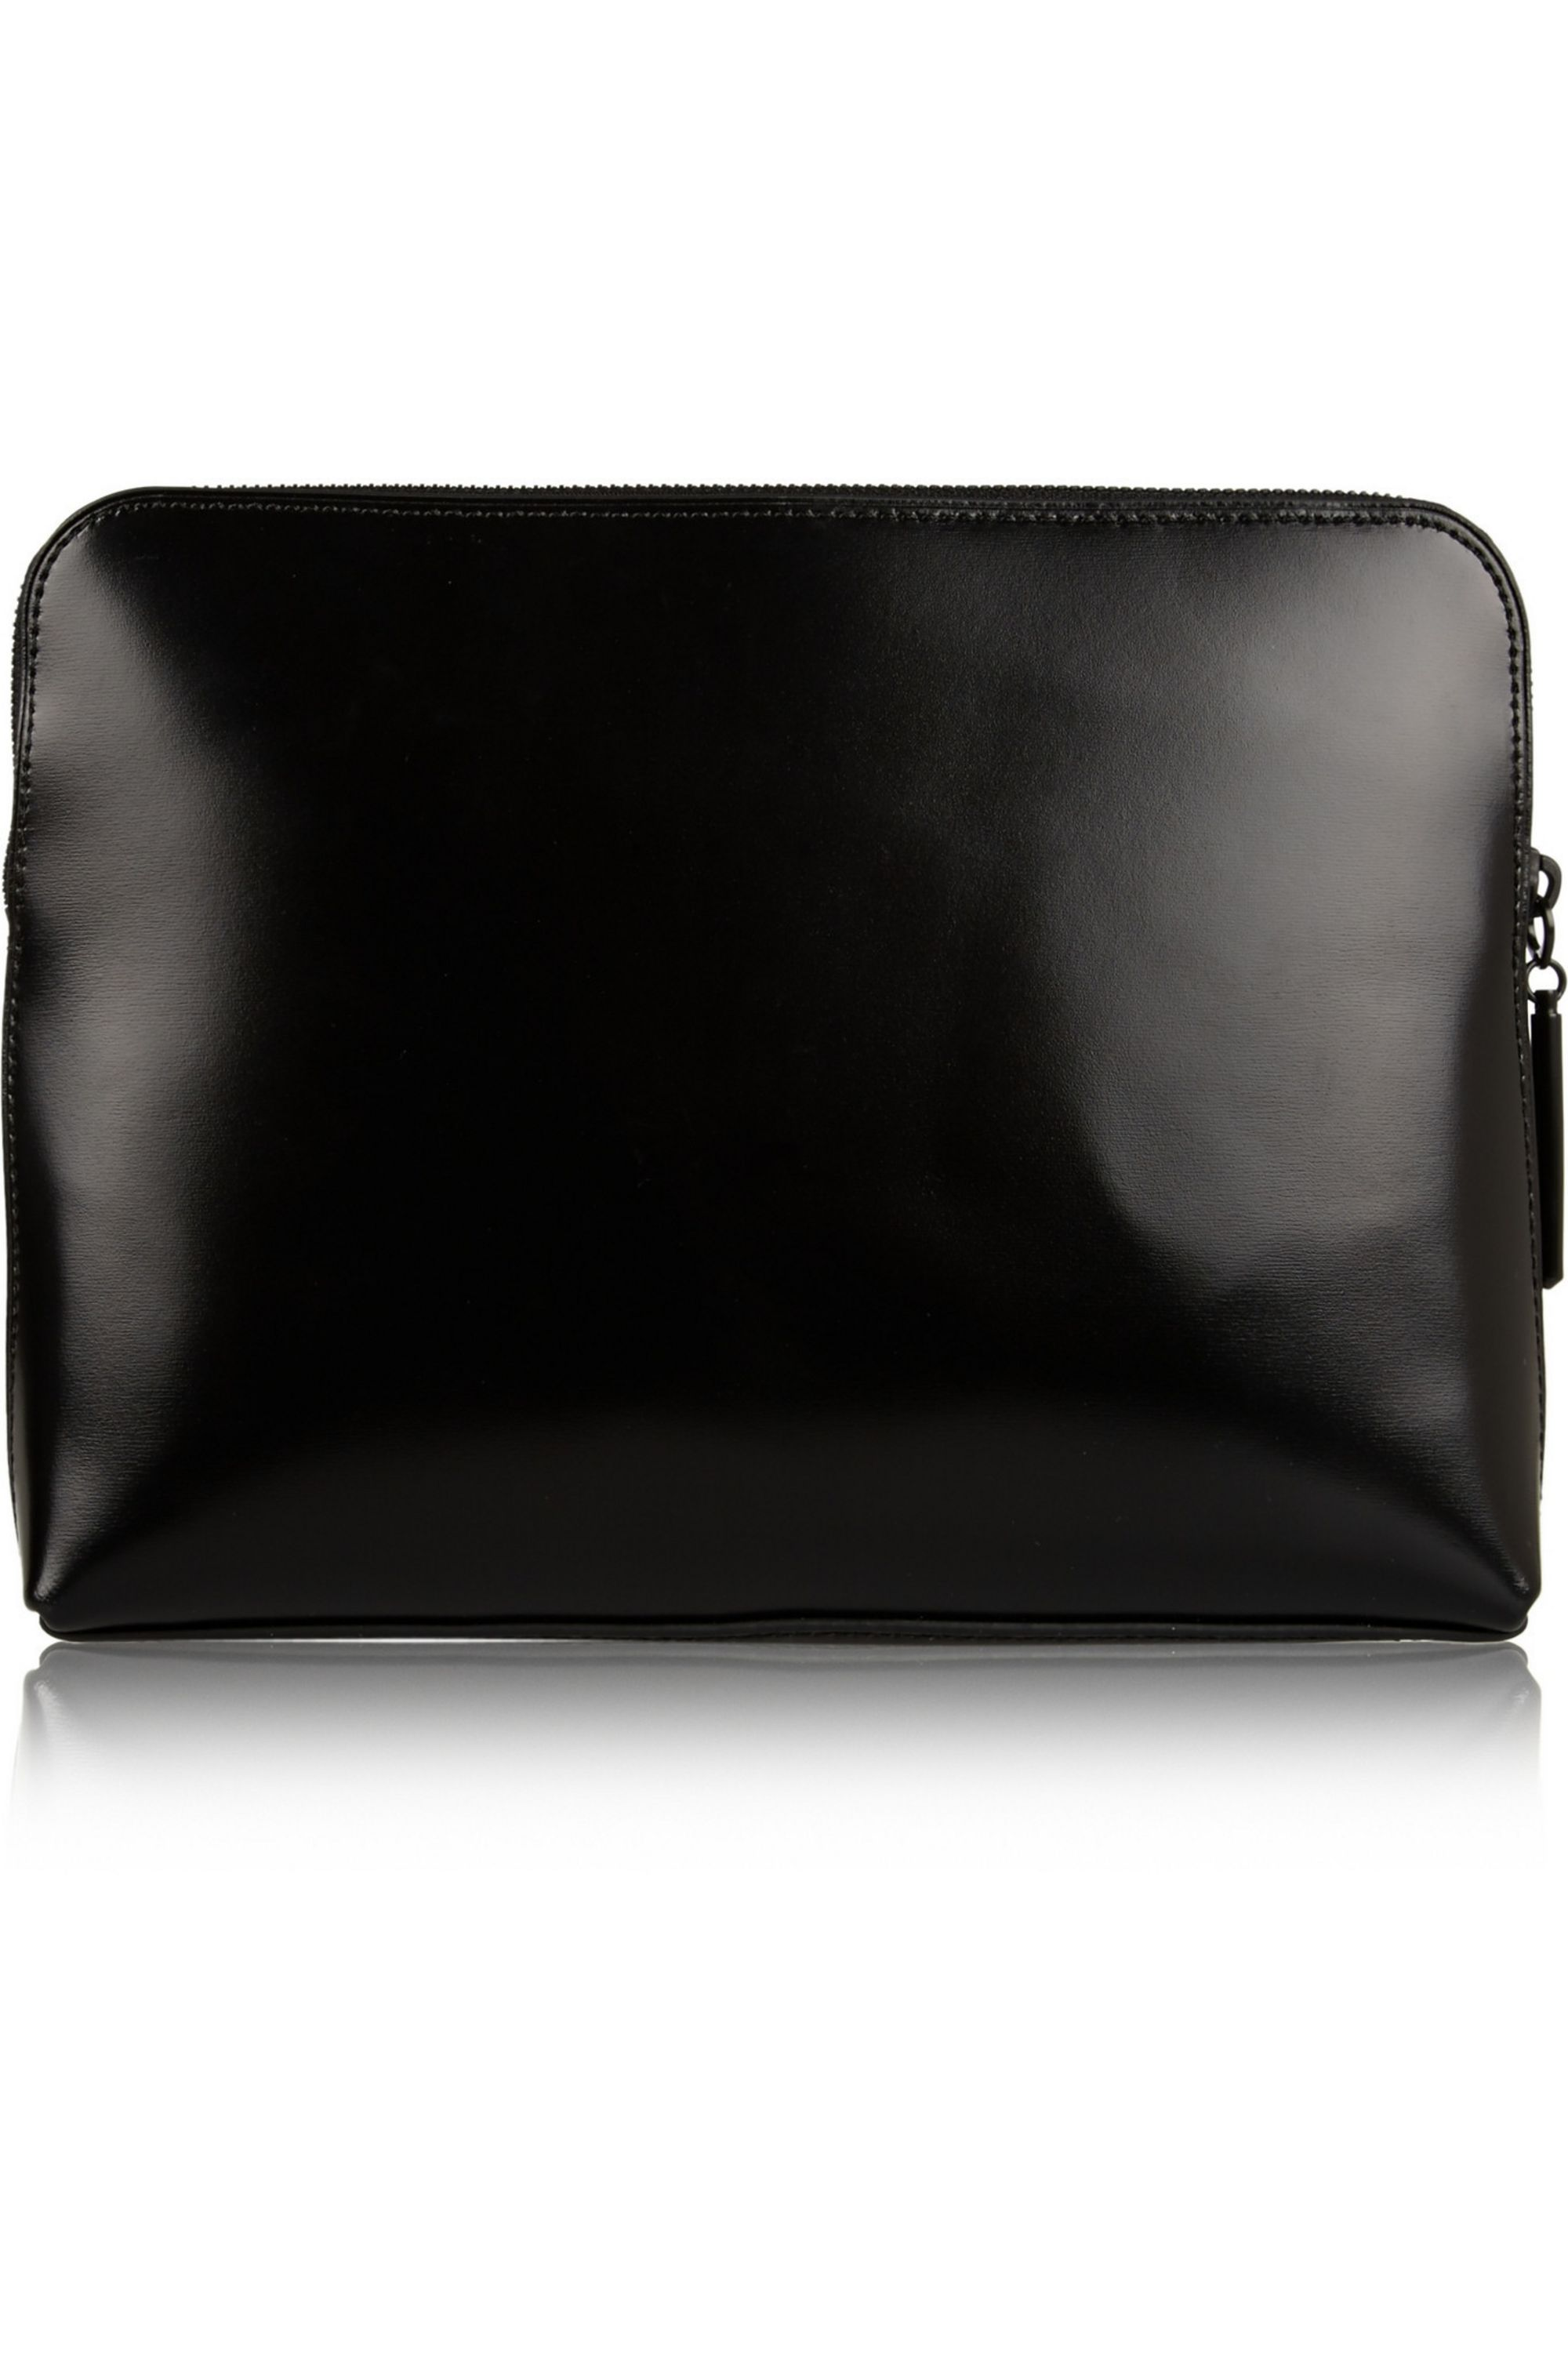 3.1 Phillip Lim 31 Minute Cosmetic Zip textured-leather clutch